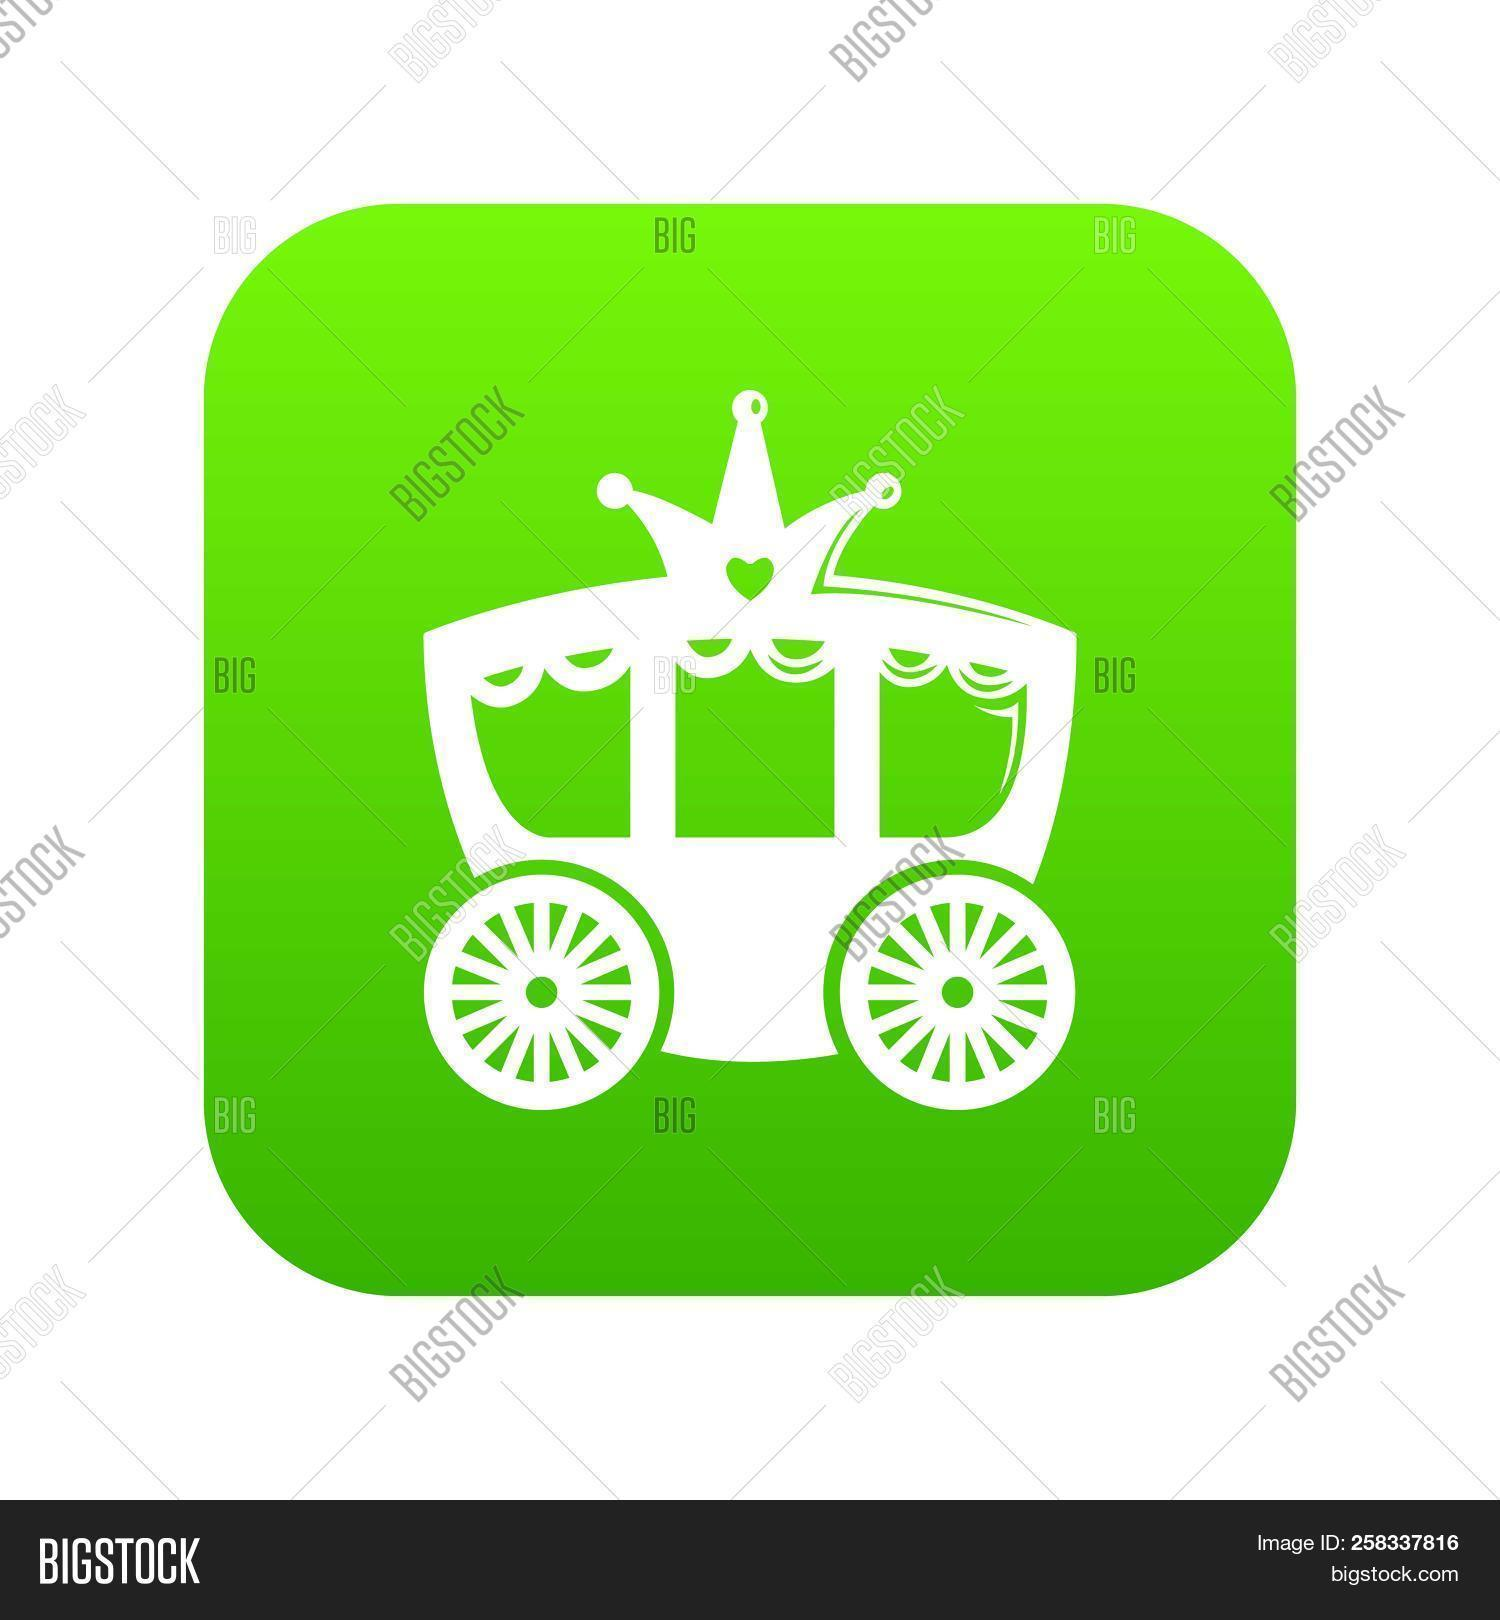 ancient,antique,art,brougham,card,carriage,cartoon,chariot,coach,contour,decoration,draw,drawing,elegance,fairytale,gharry,green,icon,illustration,isolated,lamp,lantern,light,luxury,medieval,object,old,ornament,ornate,outdoors,postcard,retro,royalty,shape,sign,silhouette,simple,single,style,symbol,transportation,travel,victorian,vintage,wealth,wedding,wheel,white